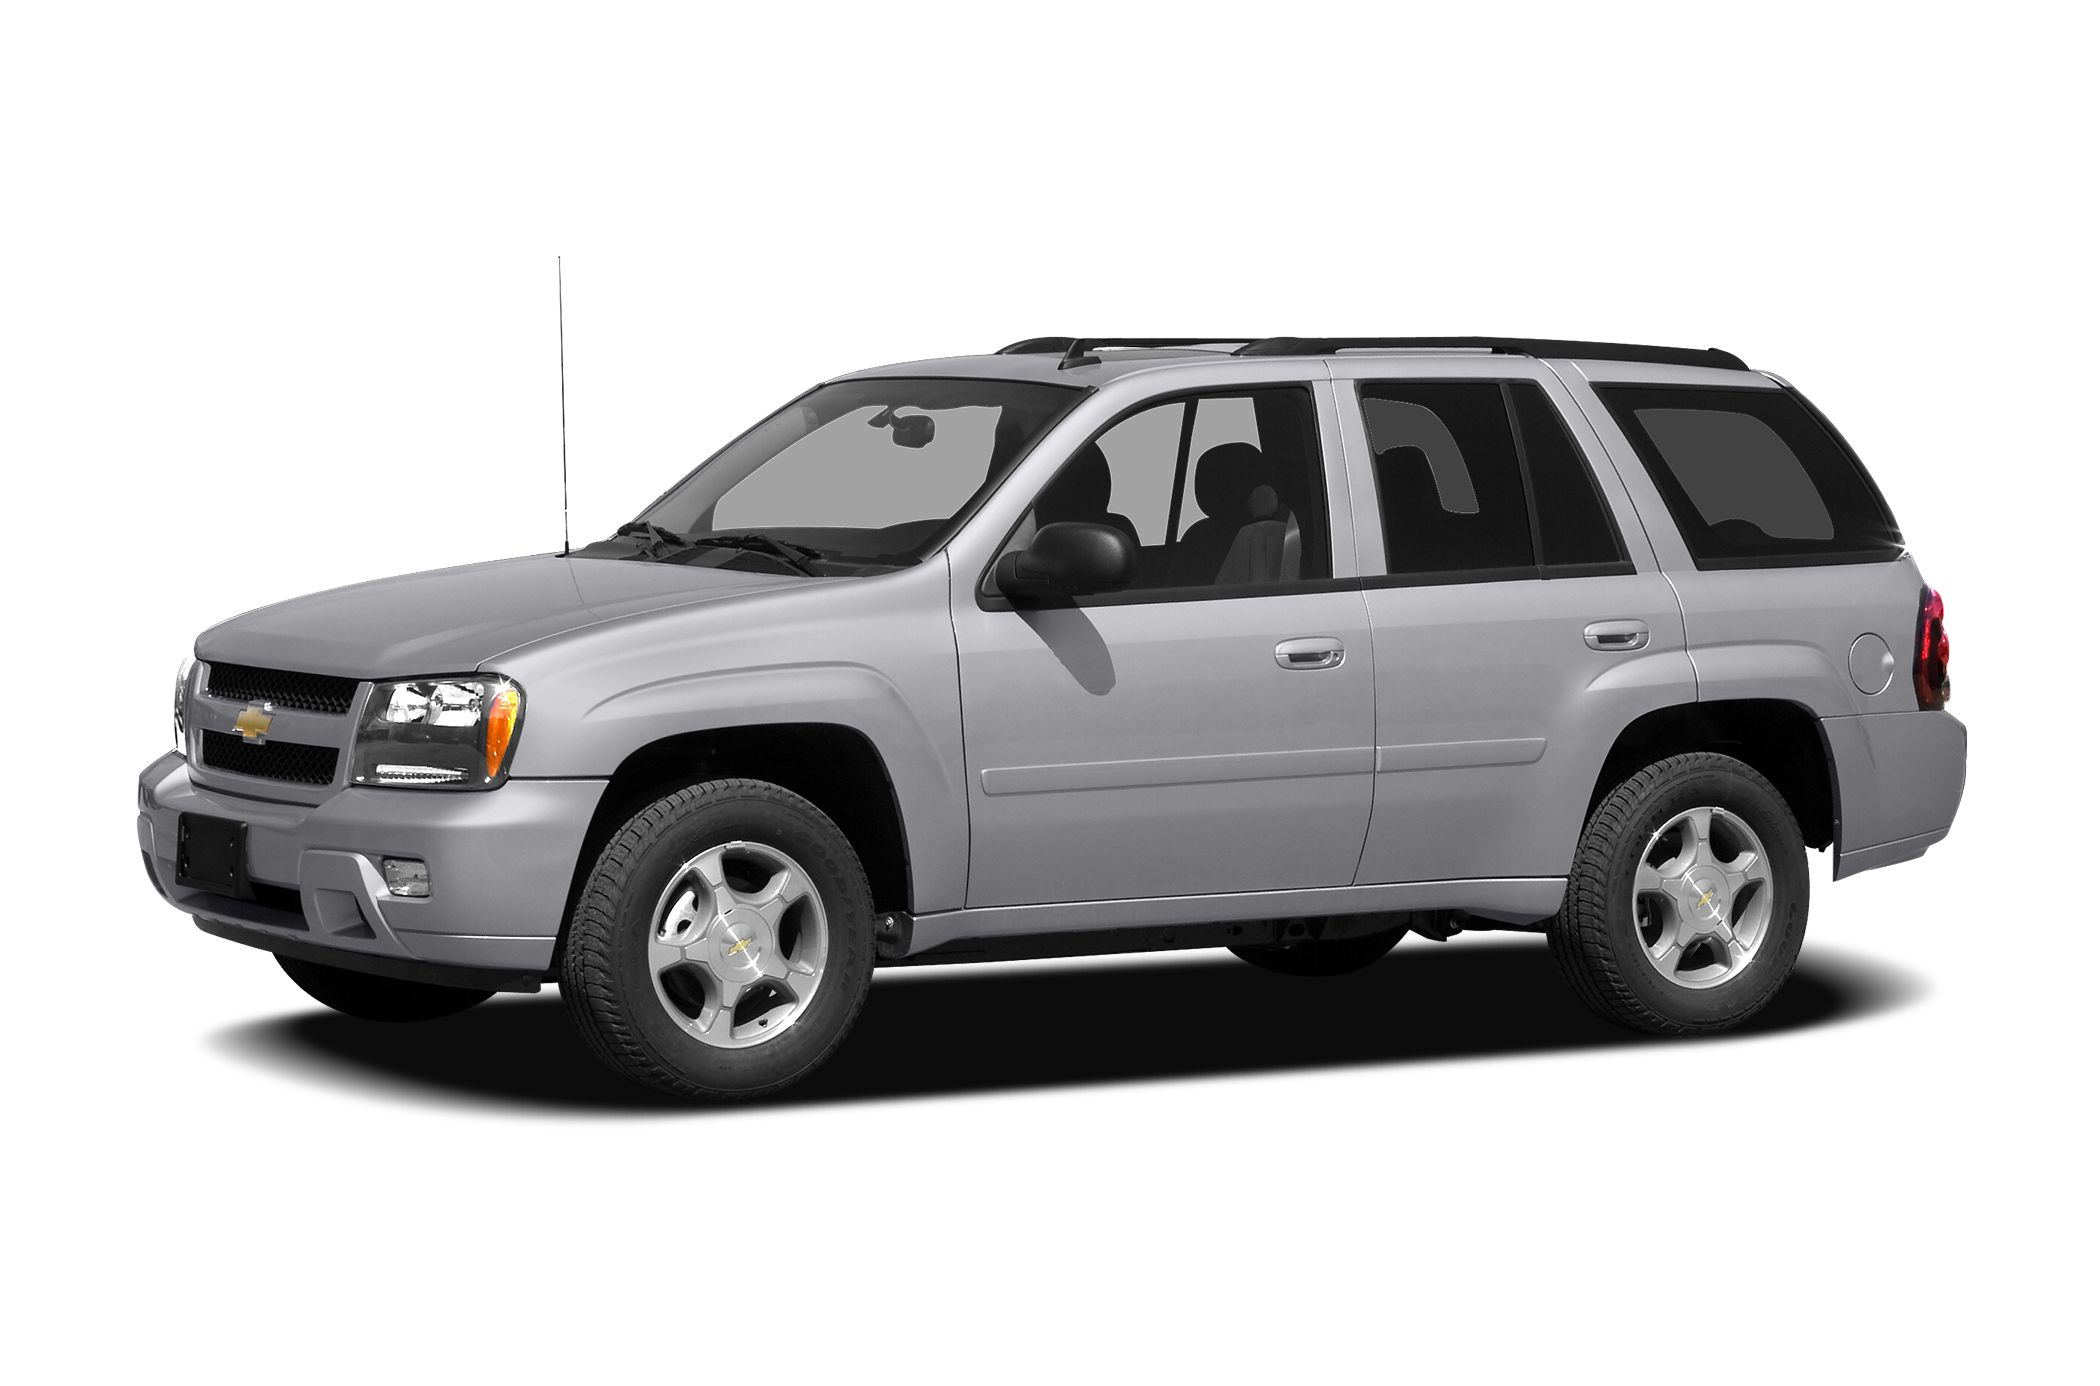 2008 Chevrolet TrailBlazer LT SUV for sale in Douglasville for $7,985 with 138,054 miles.